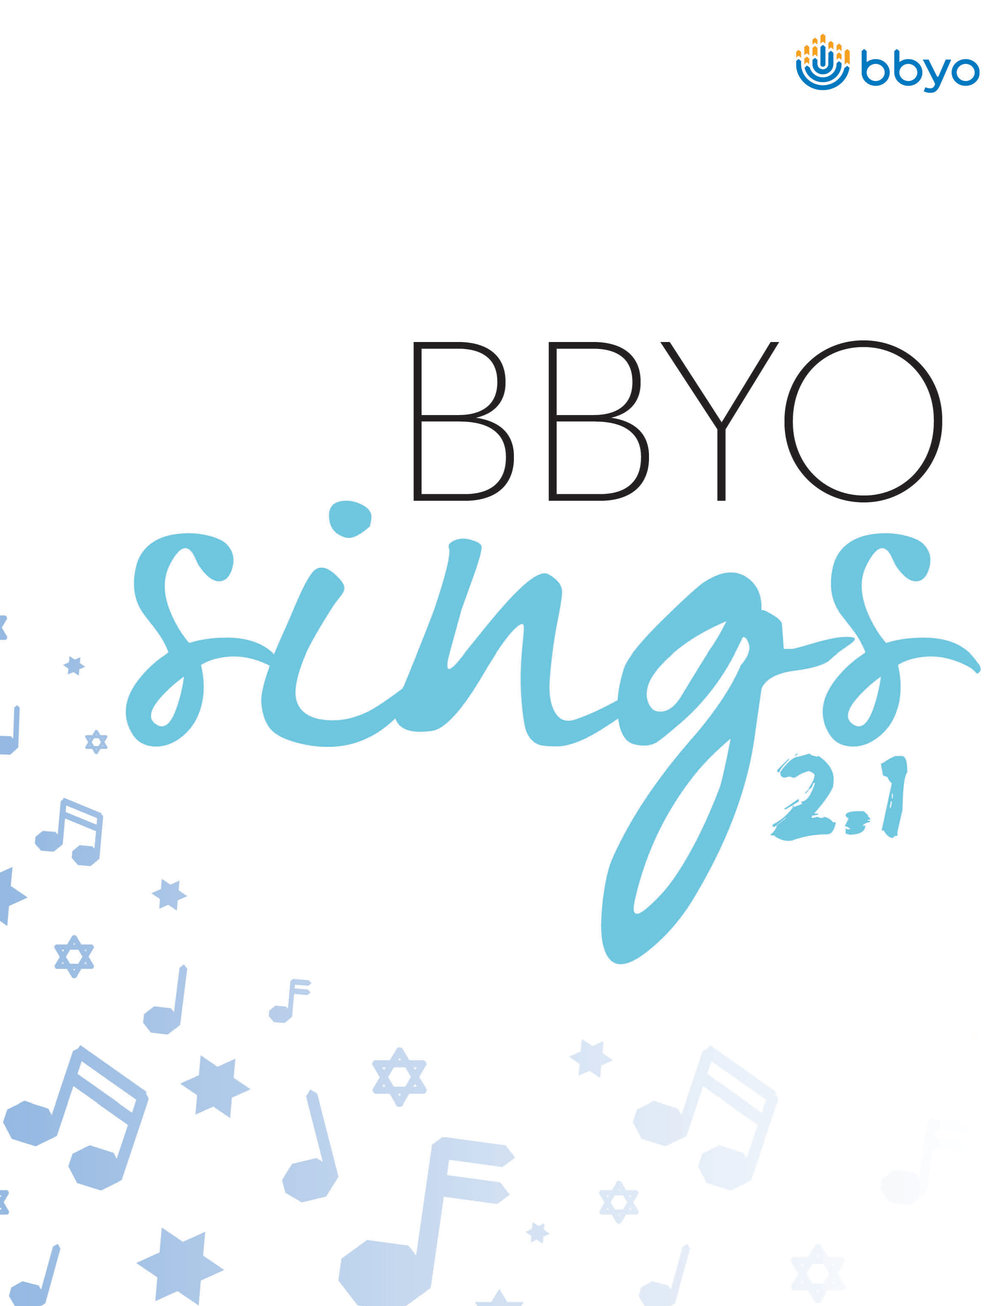 BBYO Sings Find all of the prayers and songs you need to make your service magical. If you're a songleader, you can find the chords to prayers and songsto lead like a pro.